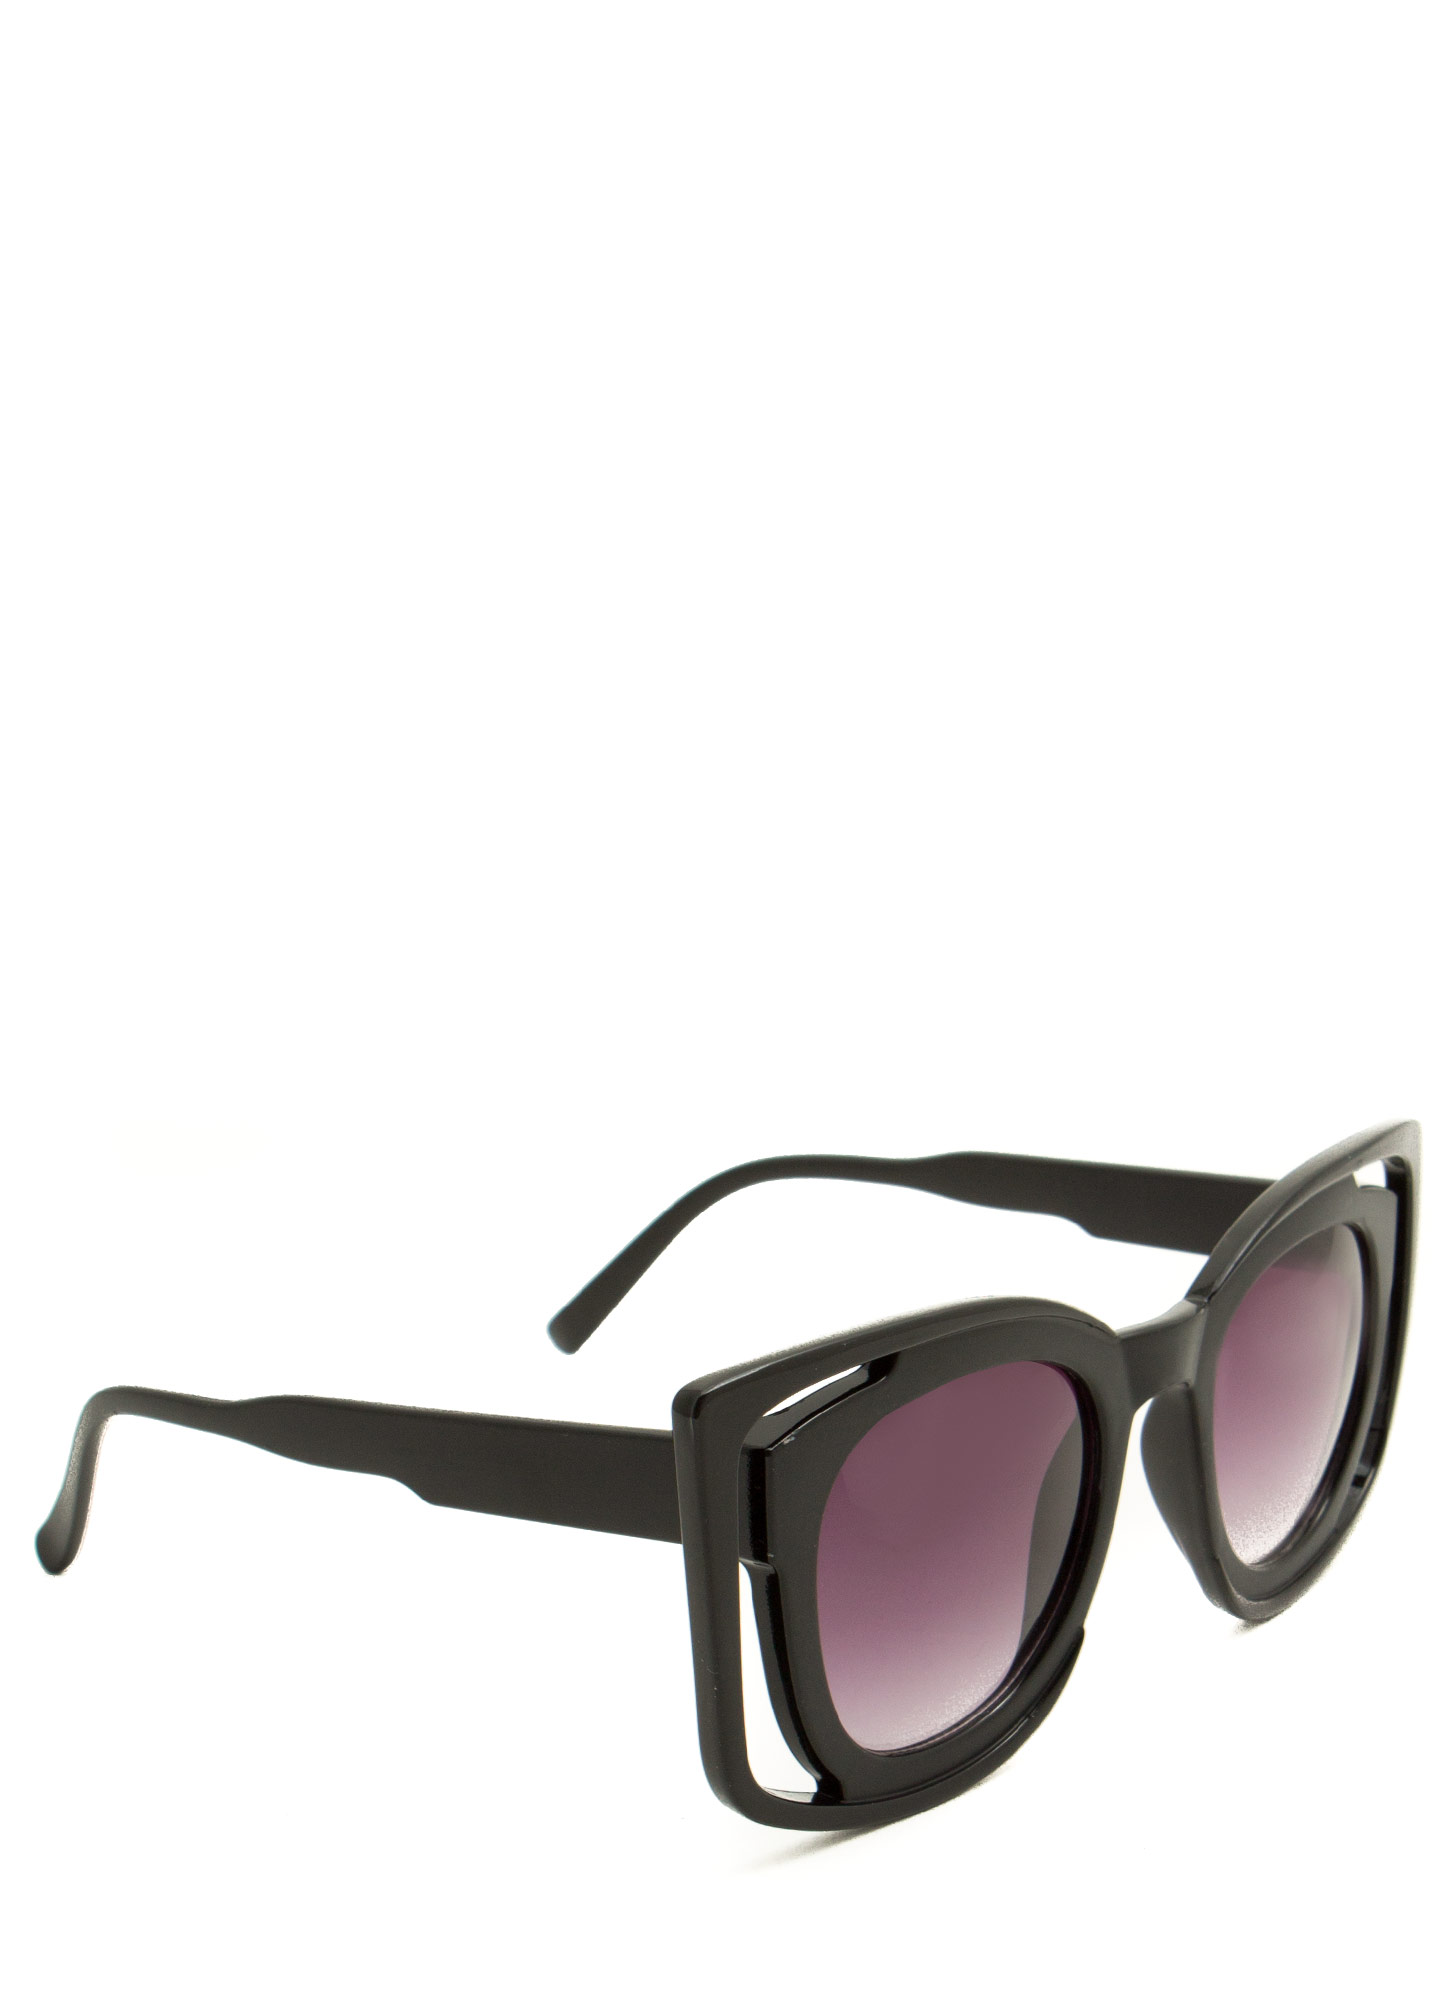 Double Frame Squared Sunglasses BLACK